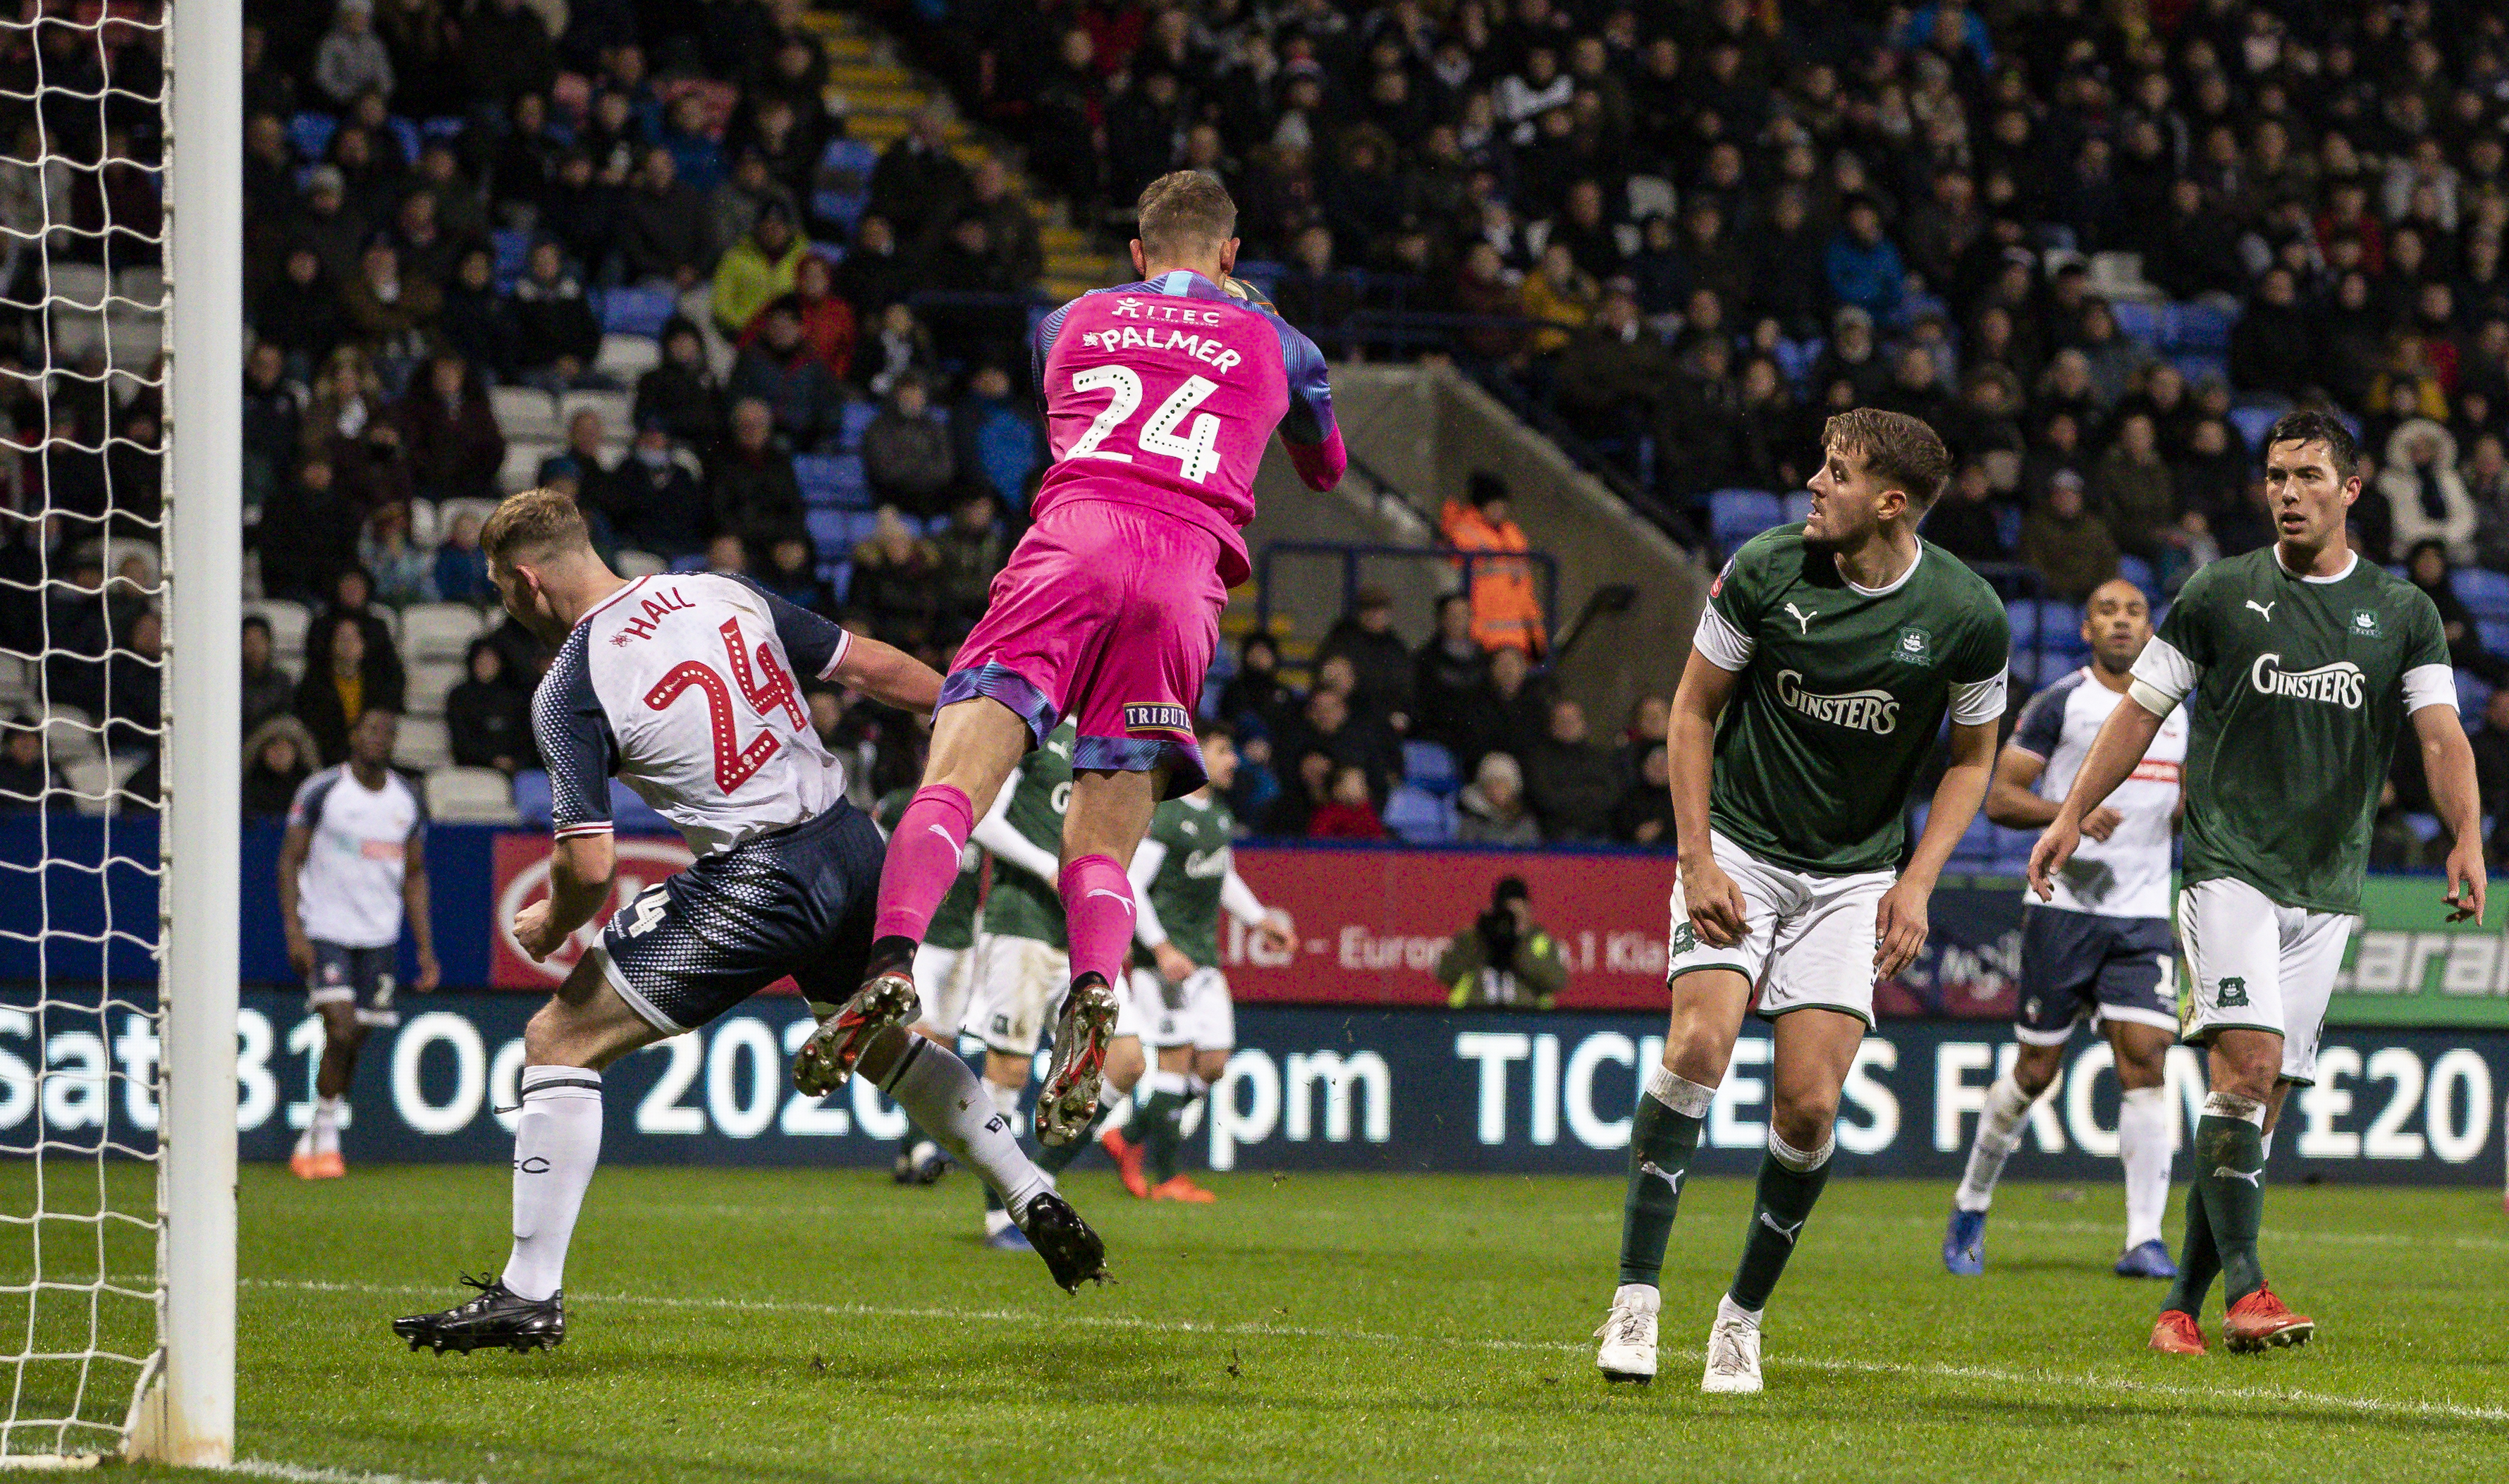 Bolton Wanderers v Plymouth Argyle - FA Cup: 1st Round